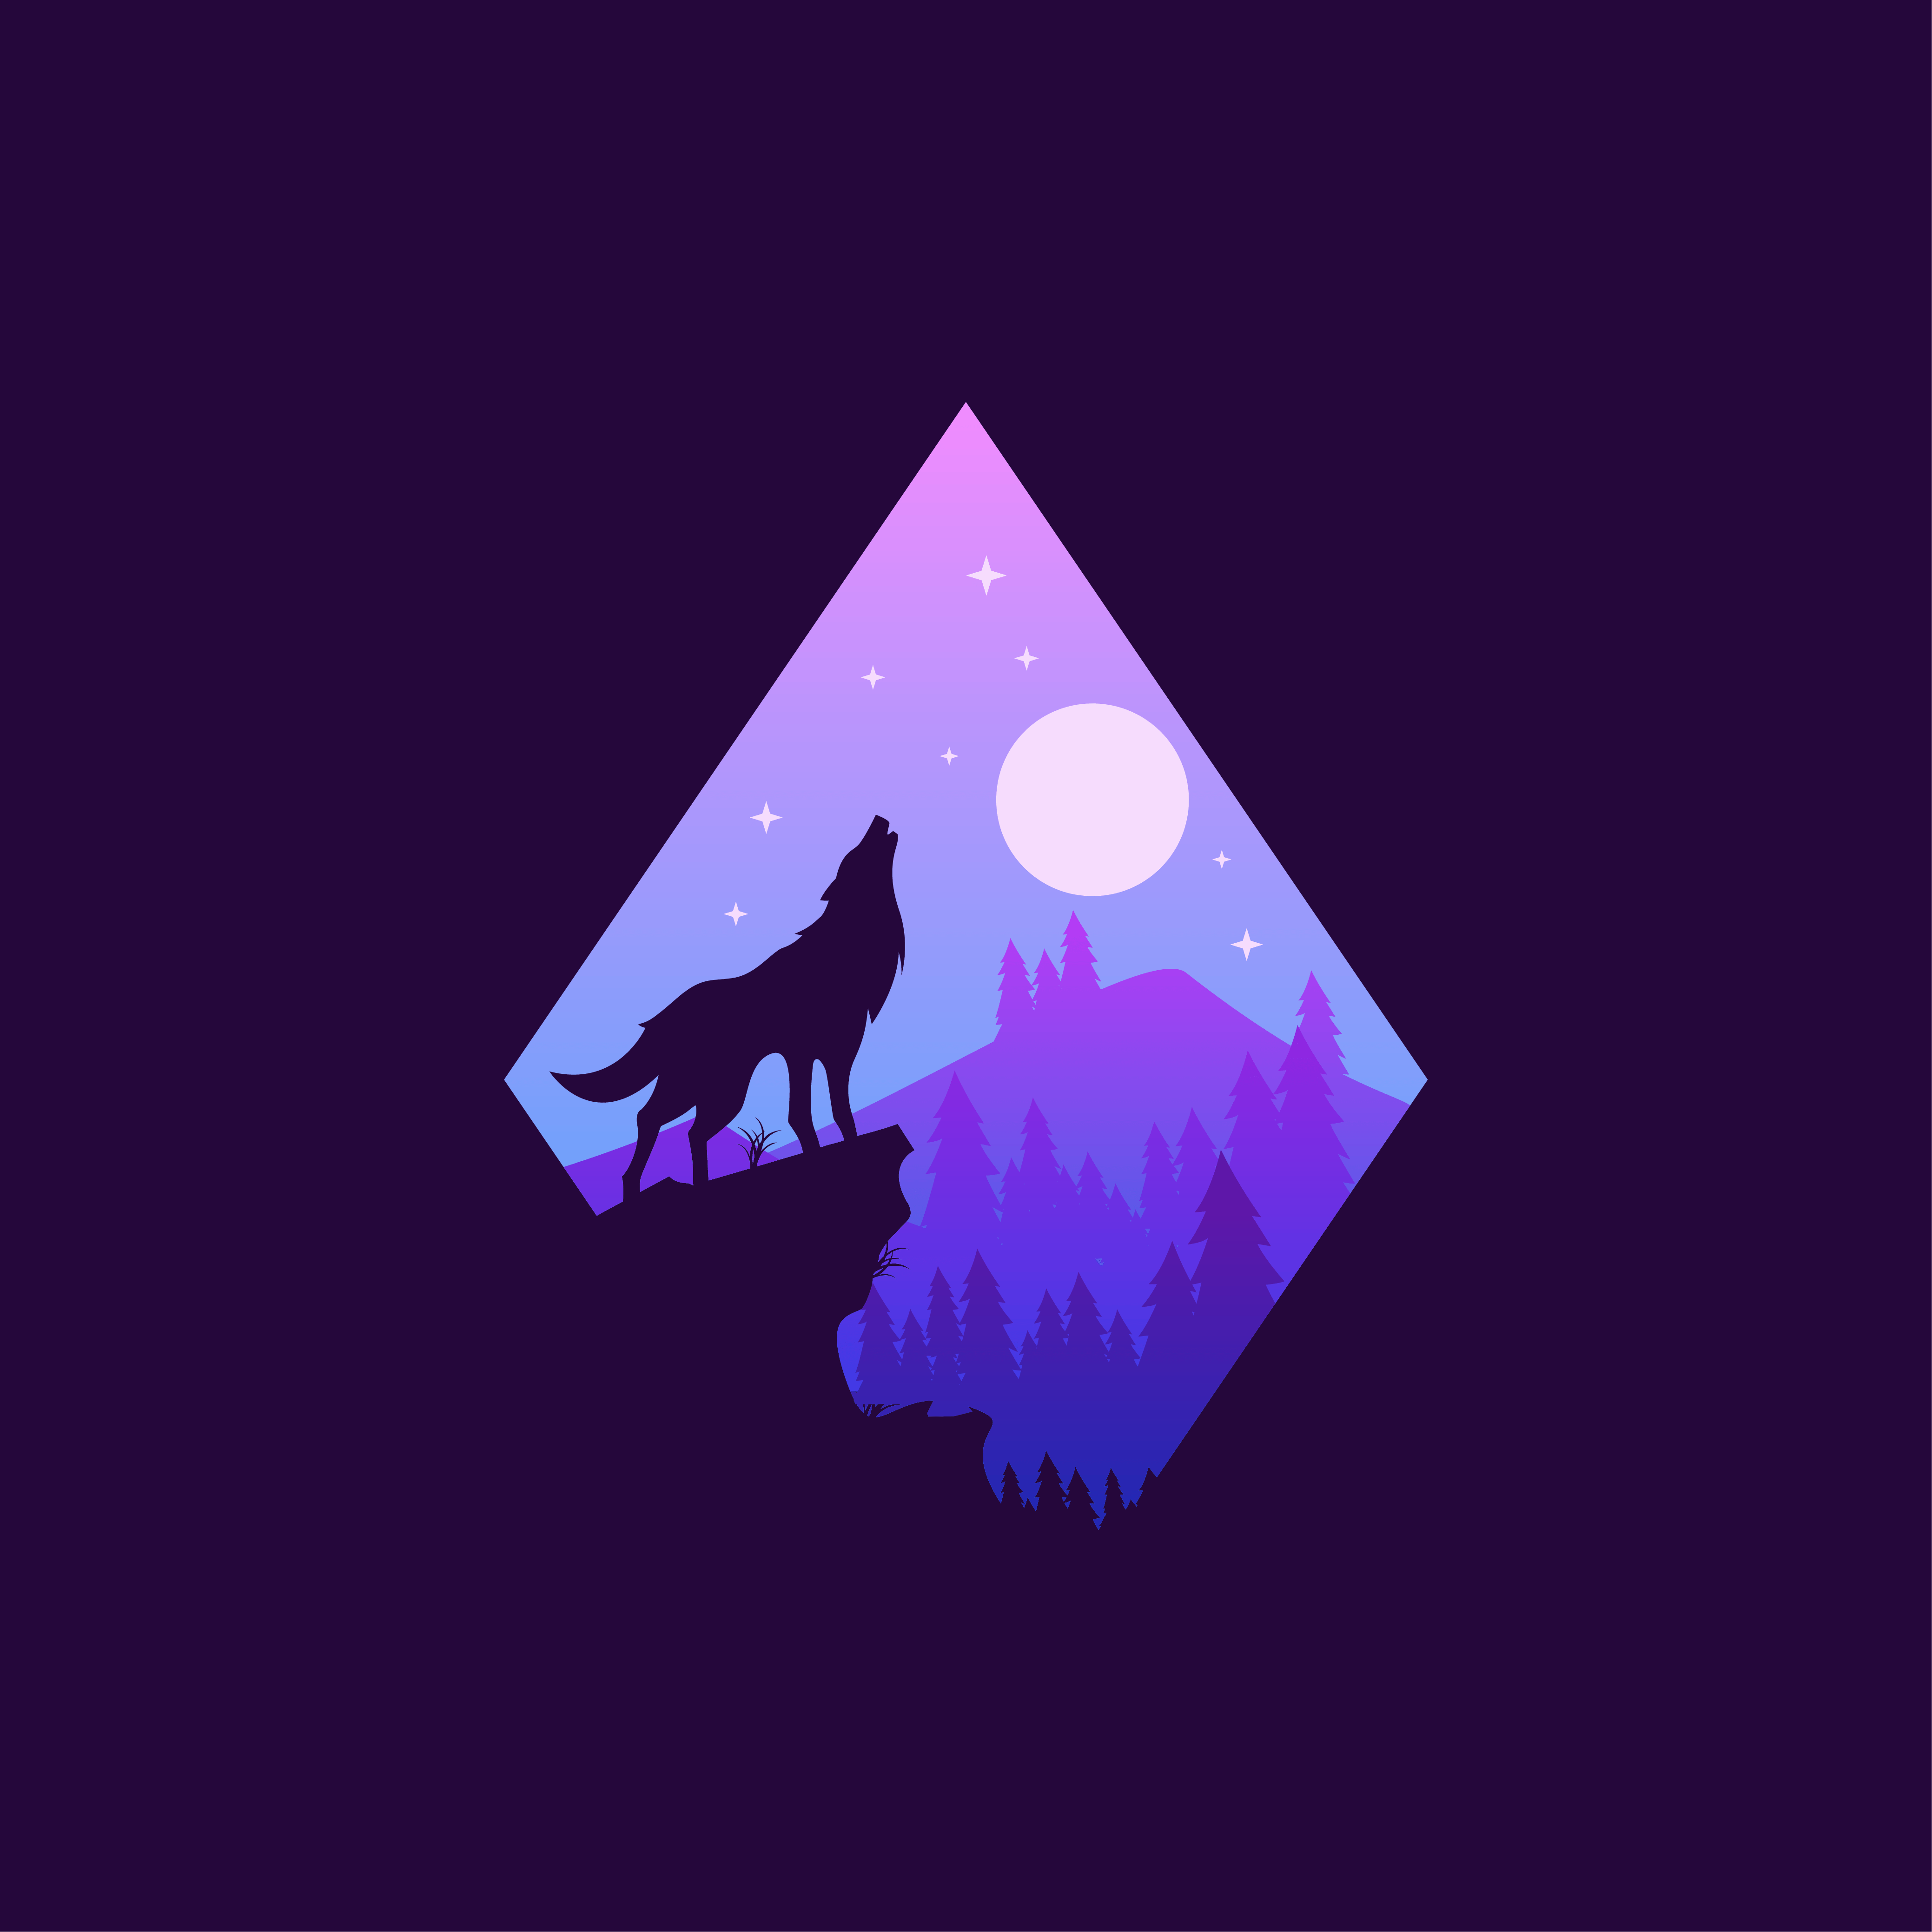 wolf_icon